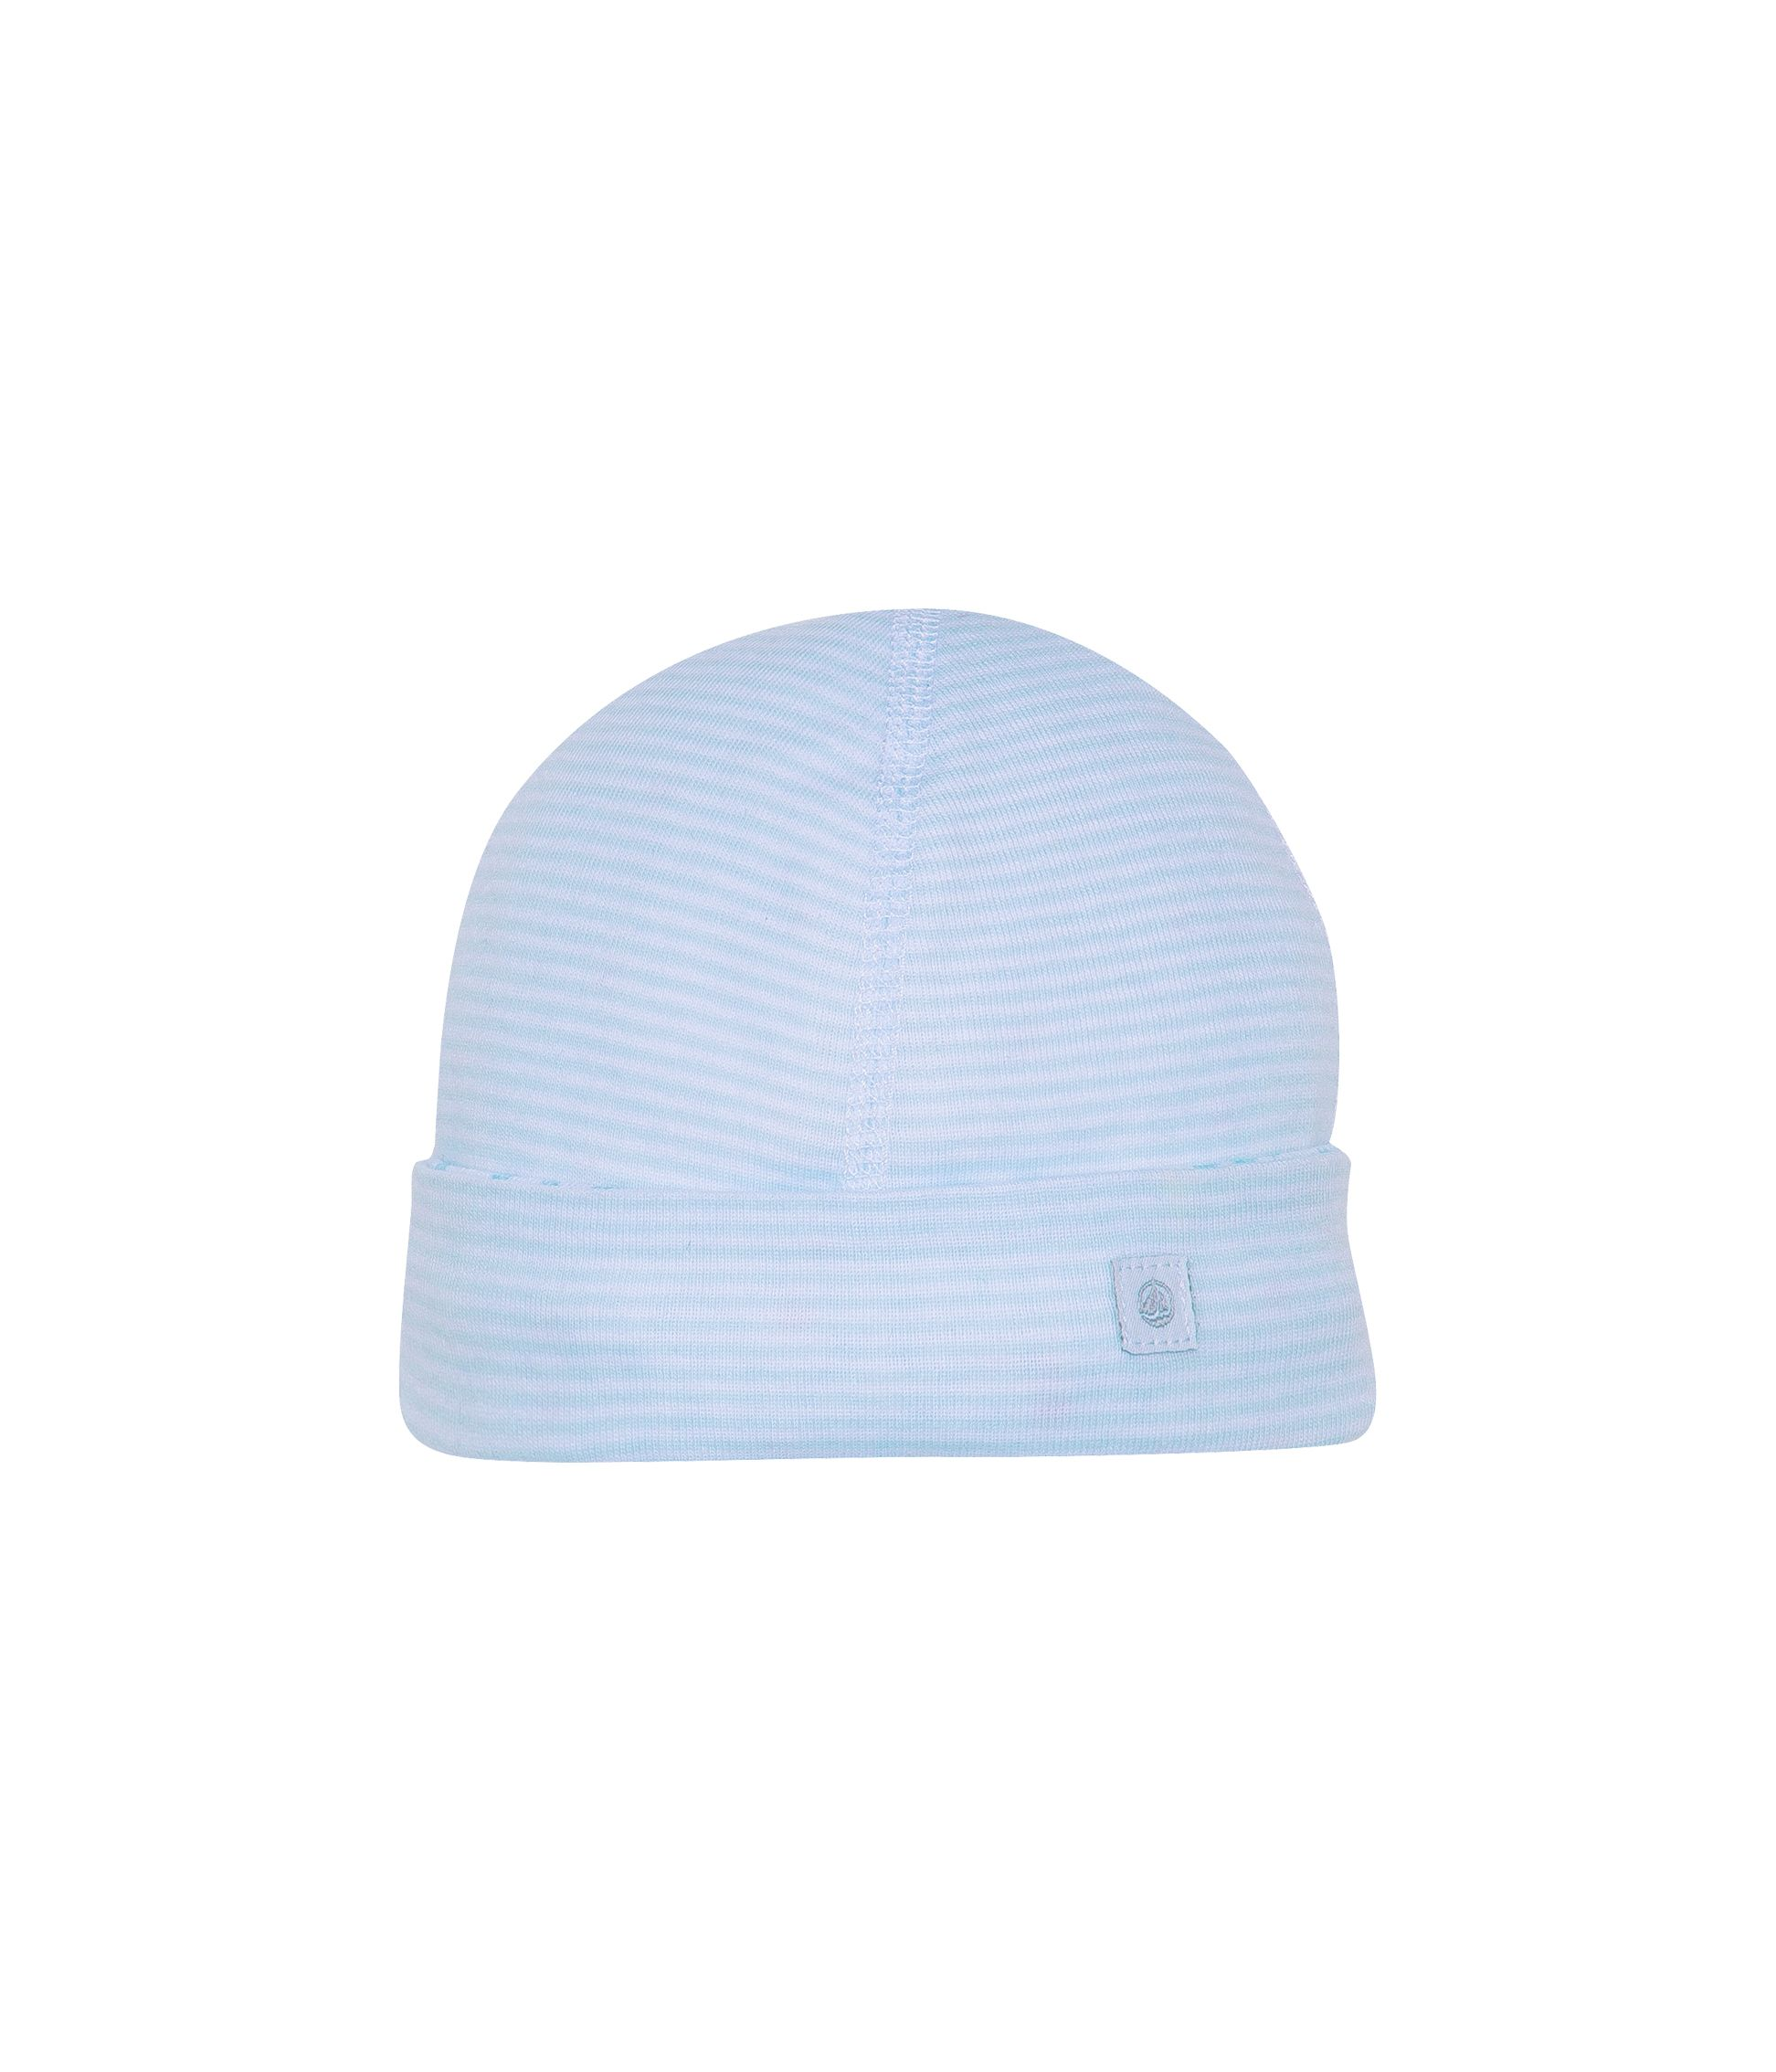 Baby boys soft cotton hat